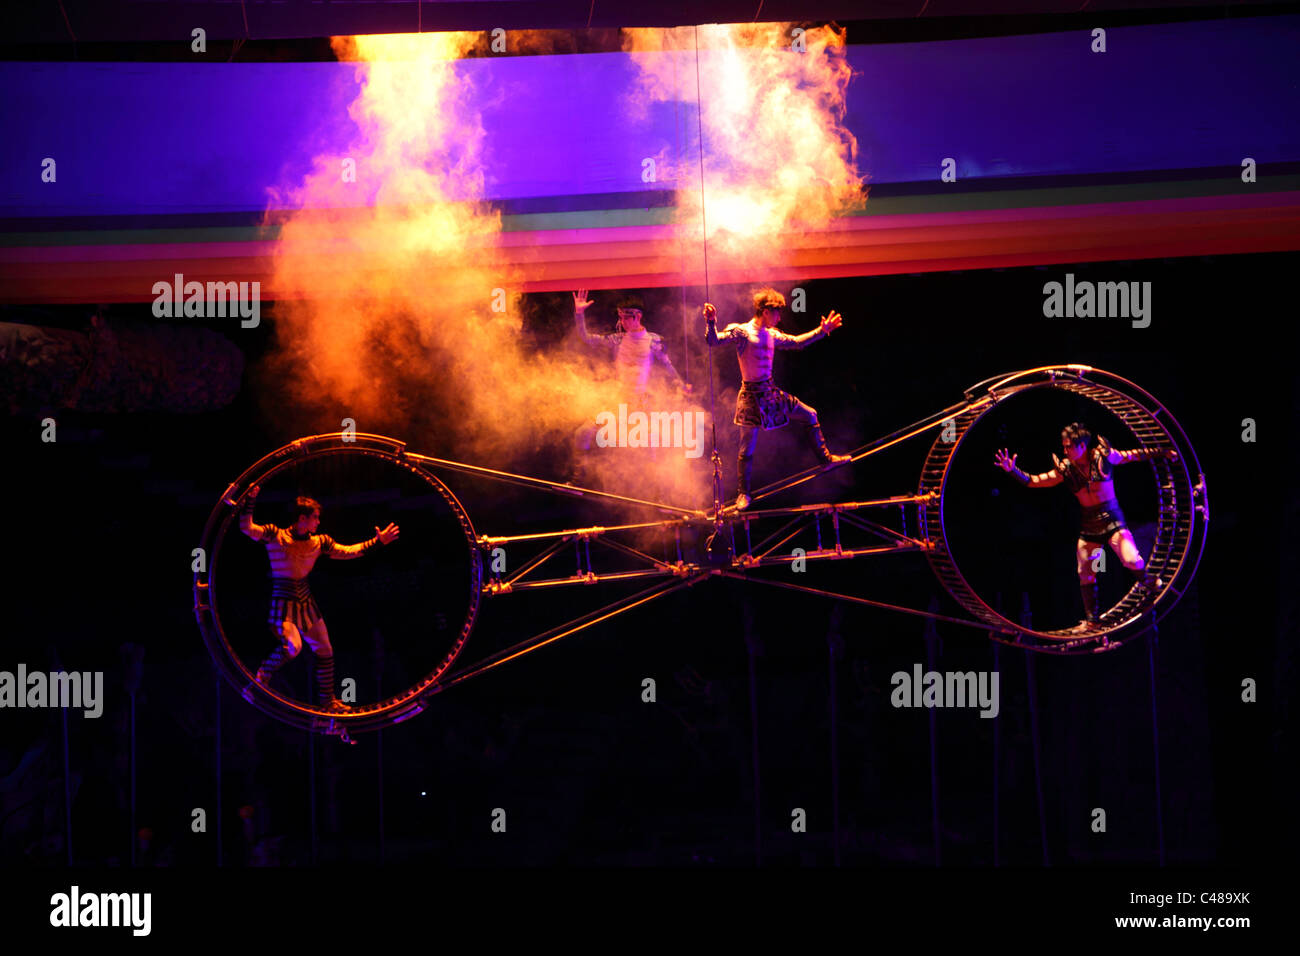 Chinese circus performers, Beijing, China - Stock Image